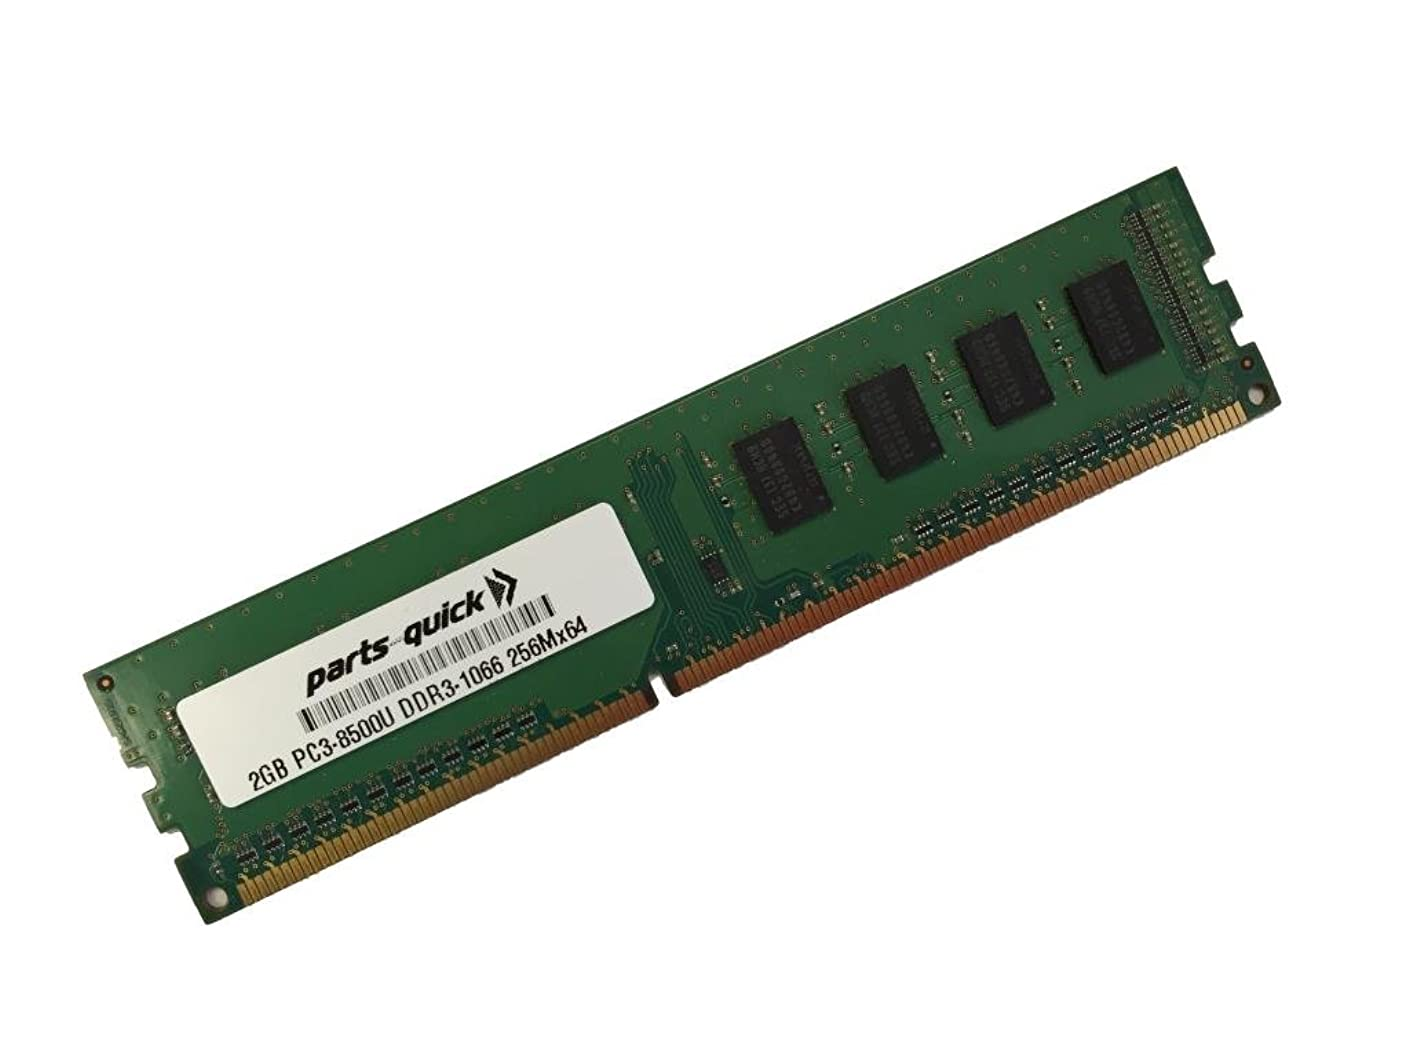 2GB Memory for eMachines EL1352G-01w DDR3 PC3-8500U 1066 MHz DIMM RAM (PARTS-QUICK BRAND)